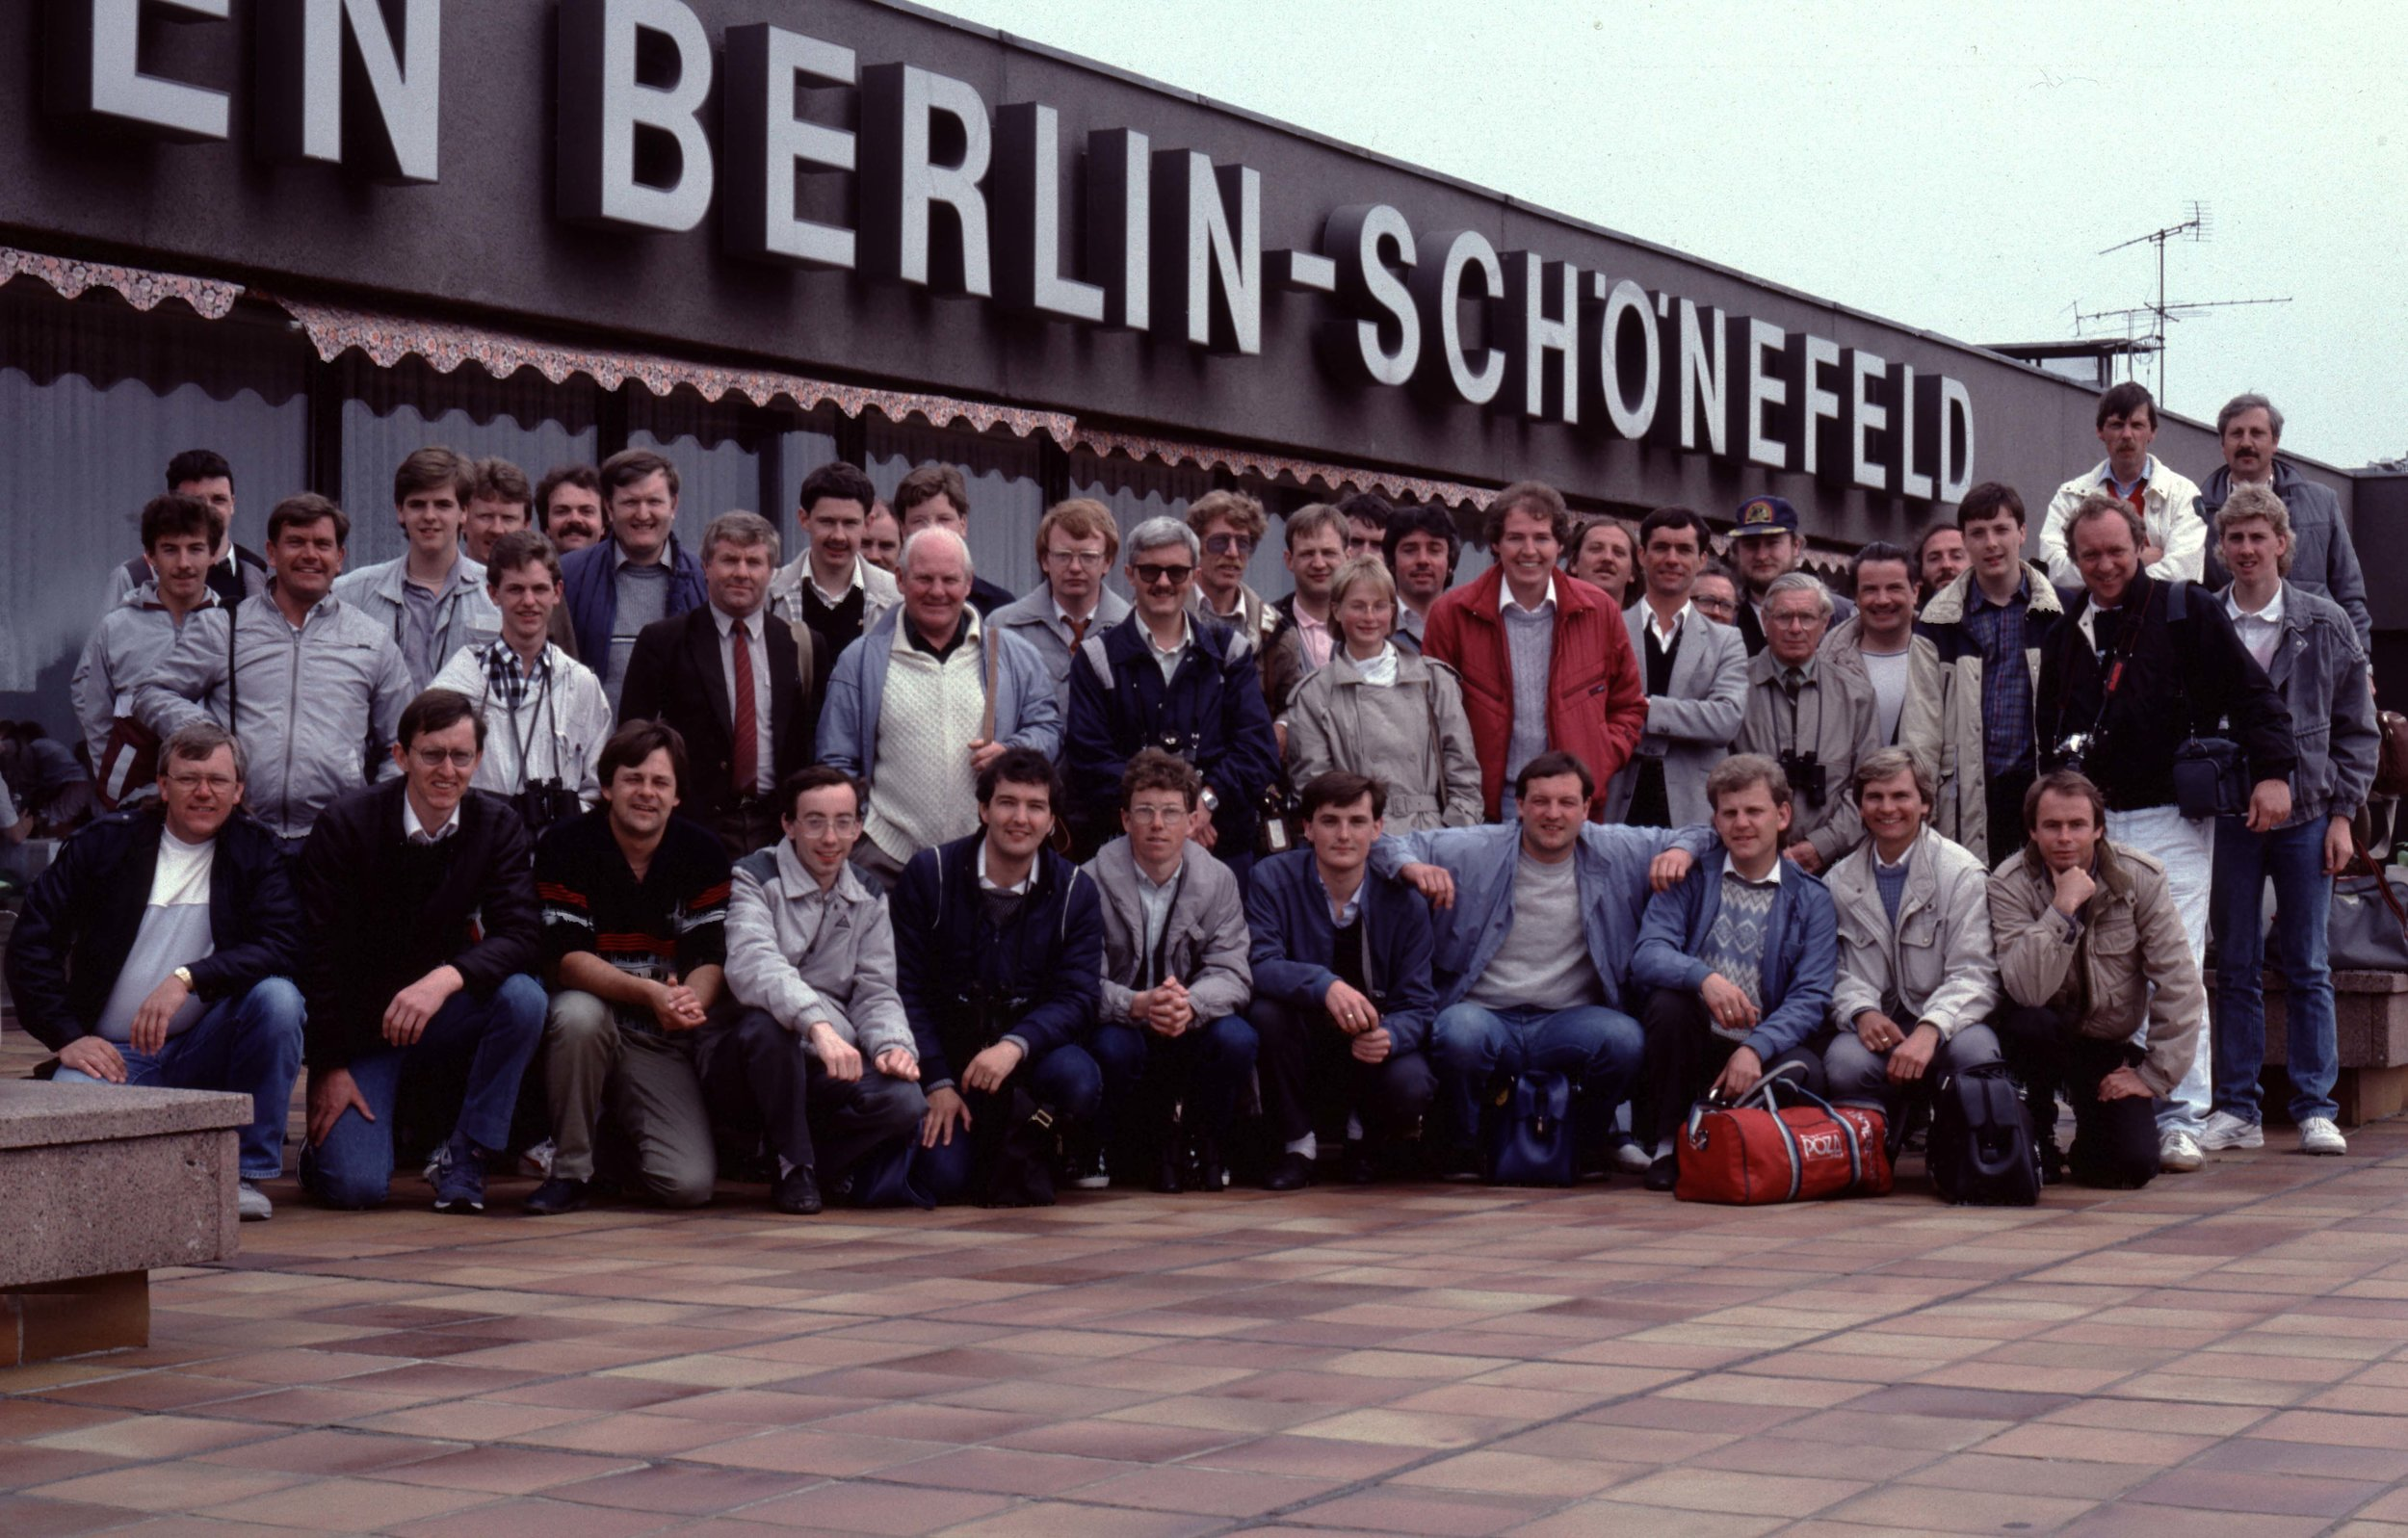 TAS Trip to Schonefeld (East Berlin as was) 1984 - a number of very familiar faces…Peter H in red jacket standing next to Paul West (Guy) and many who have taken to the sky and are now flying with the angels..Aaah such happy days…